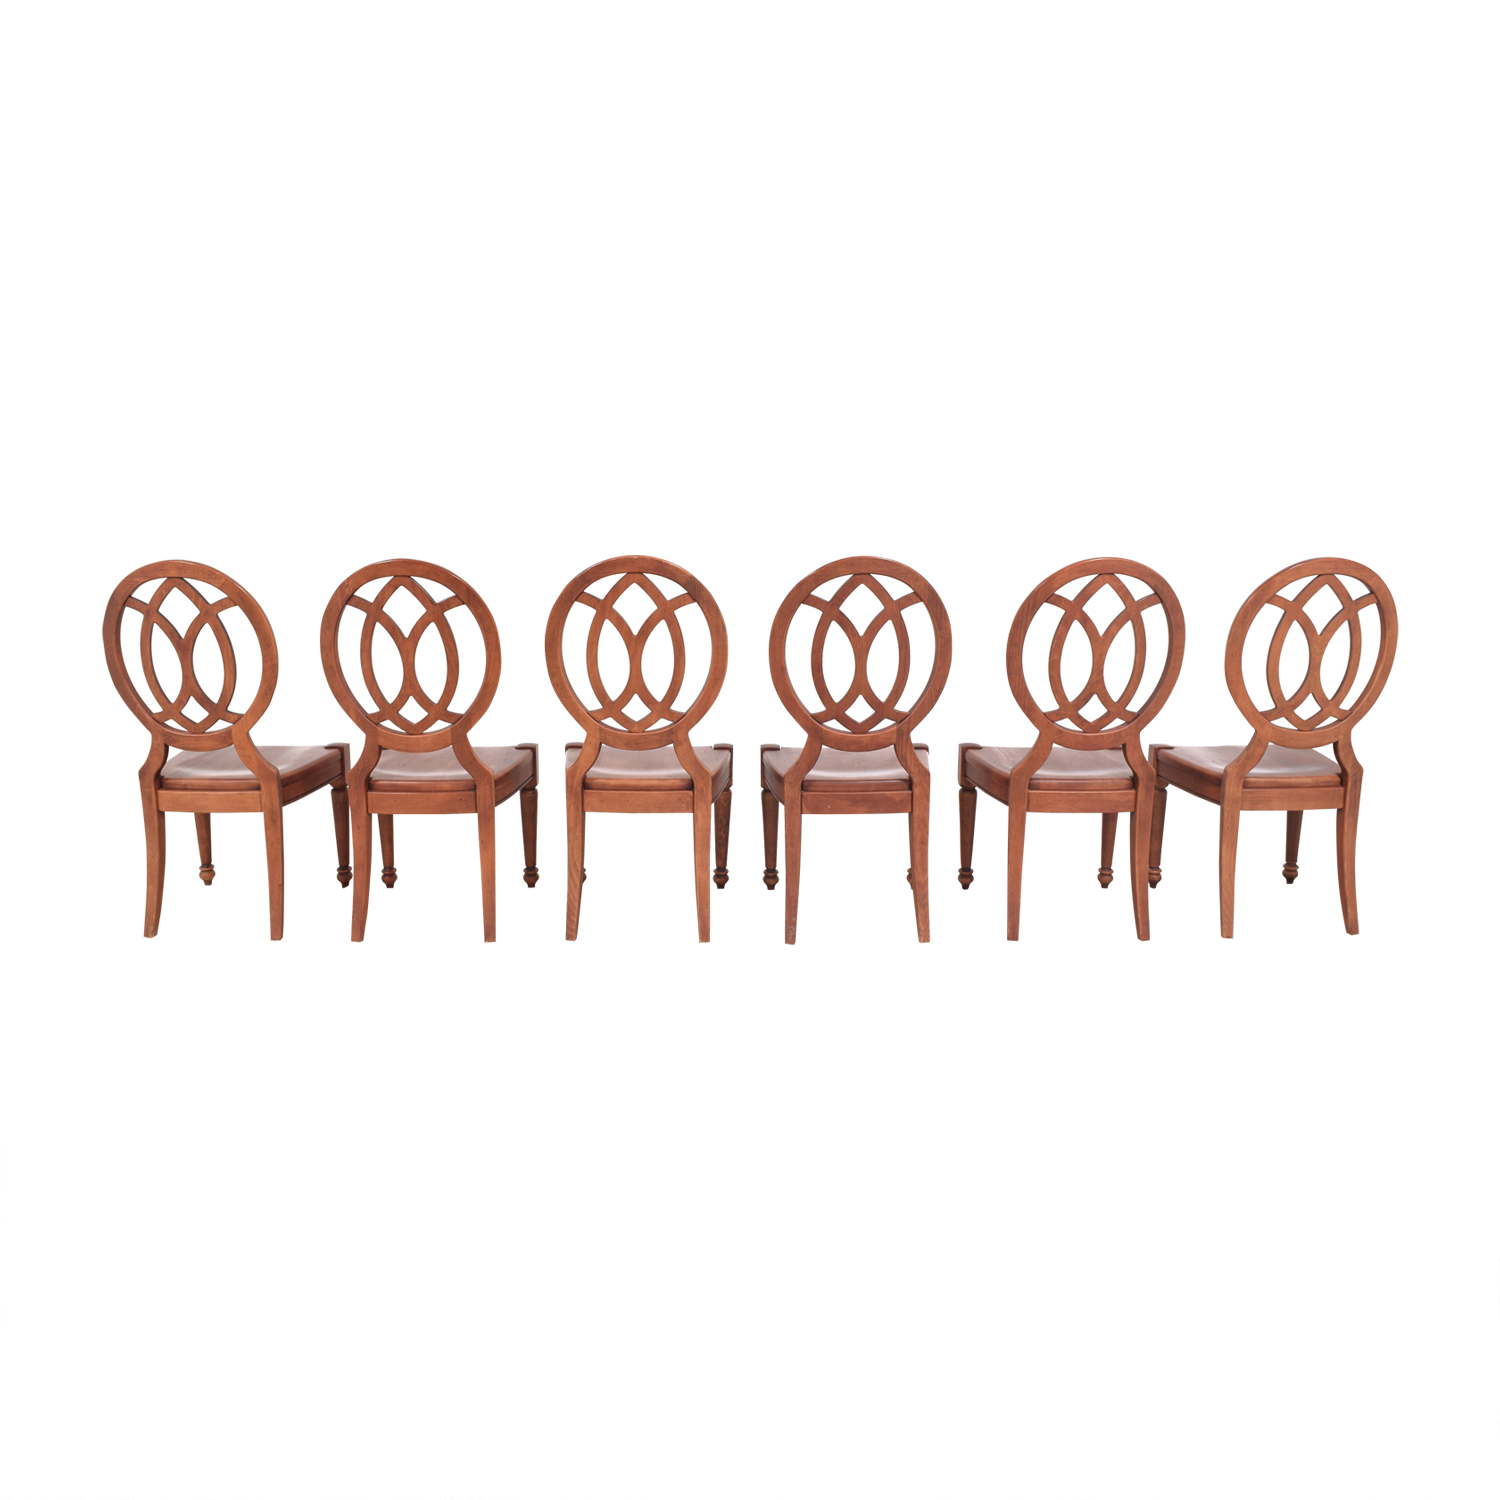 Domain Domain Medallion Back Dining Chairs for sale